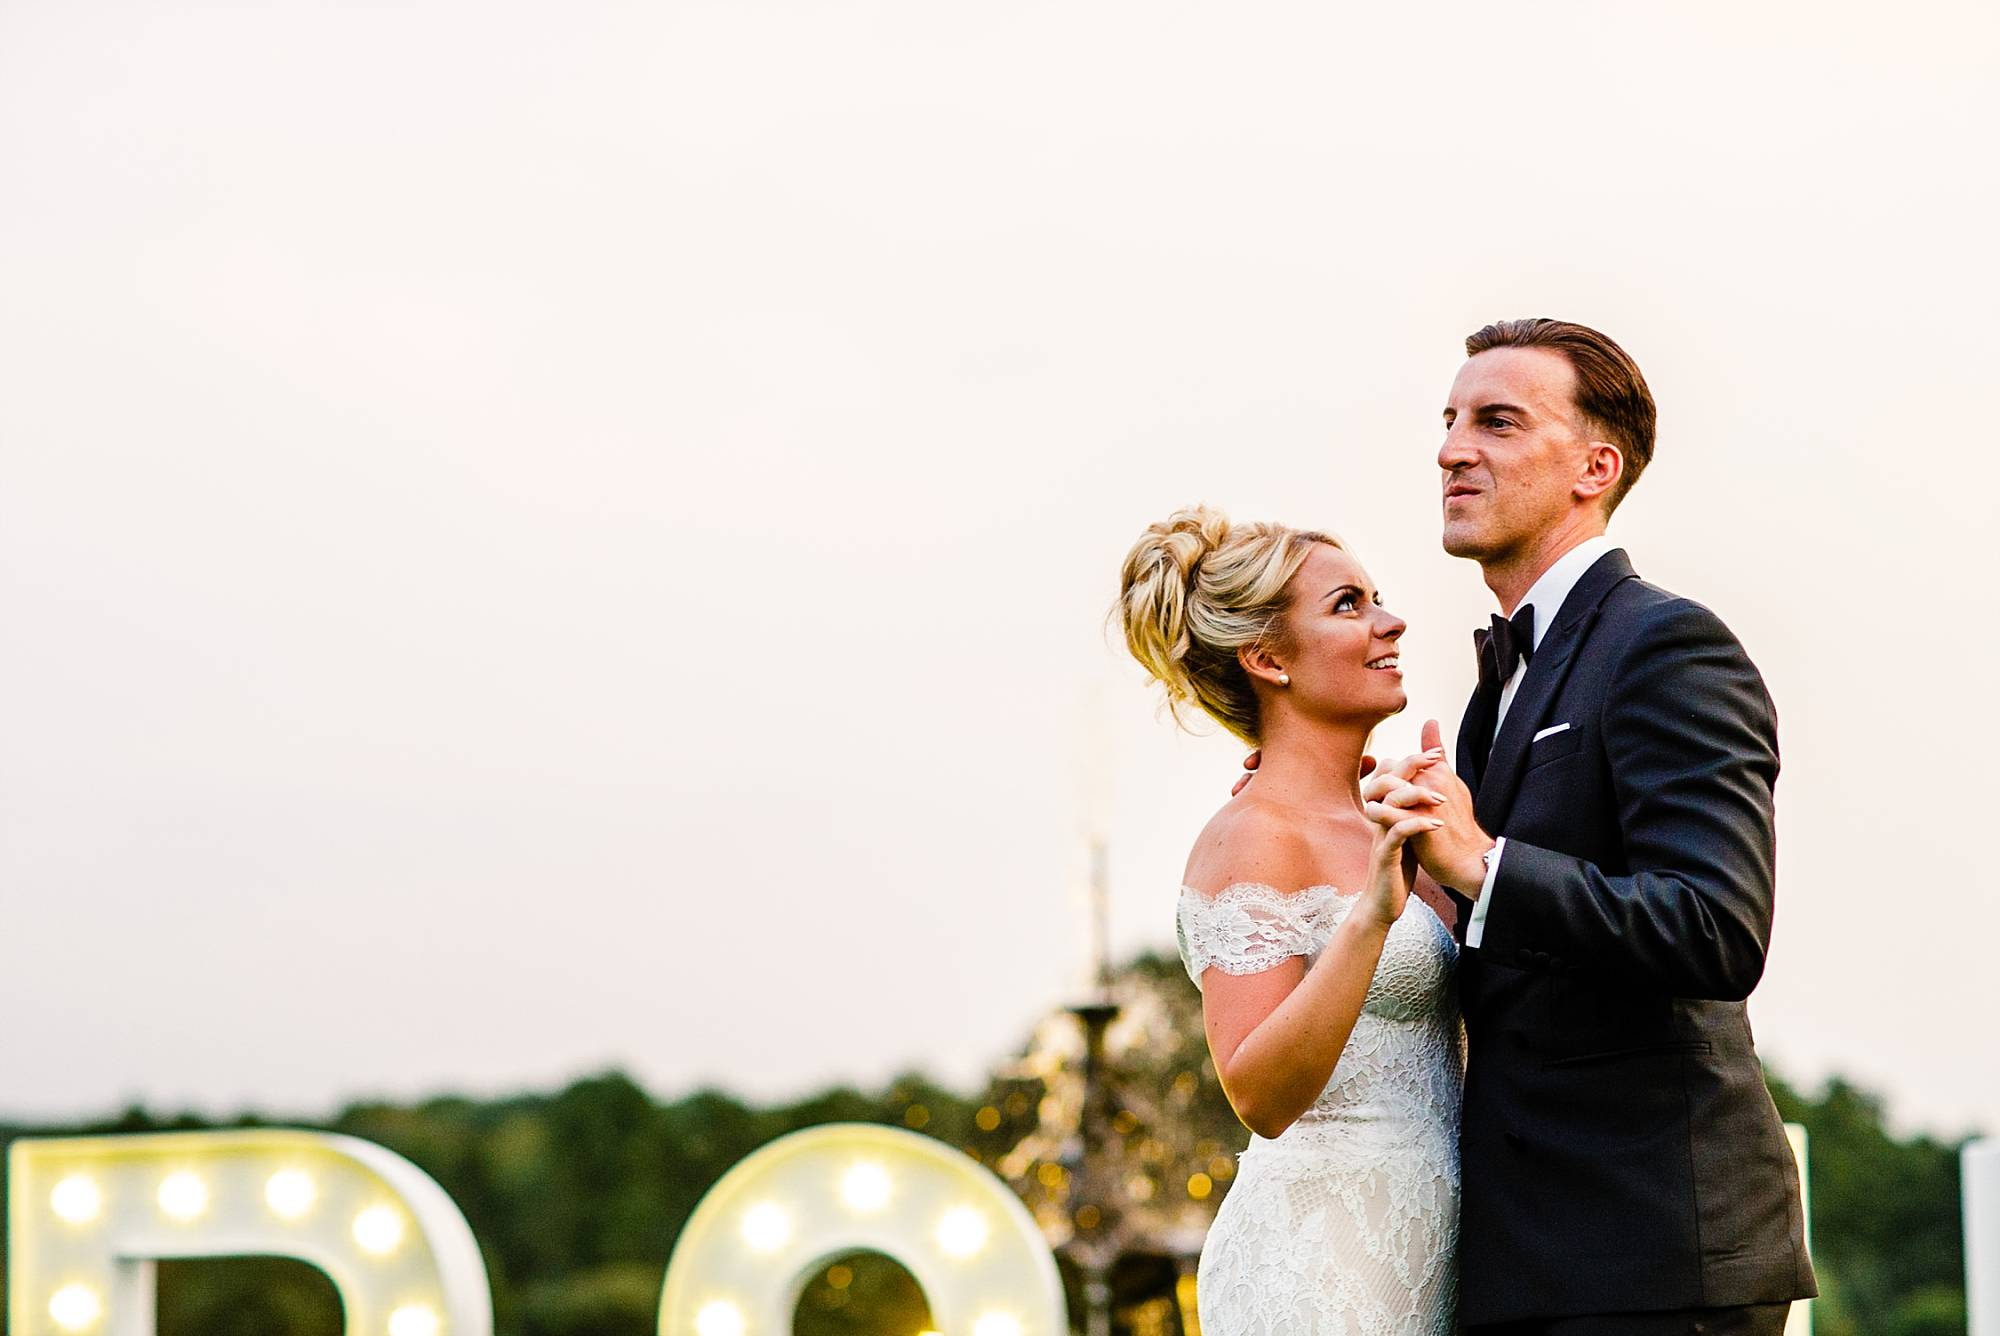 Gosfield Hall Essex Wedding Photographer_0157.jpg